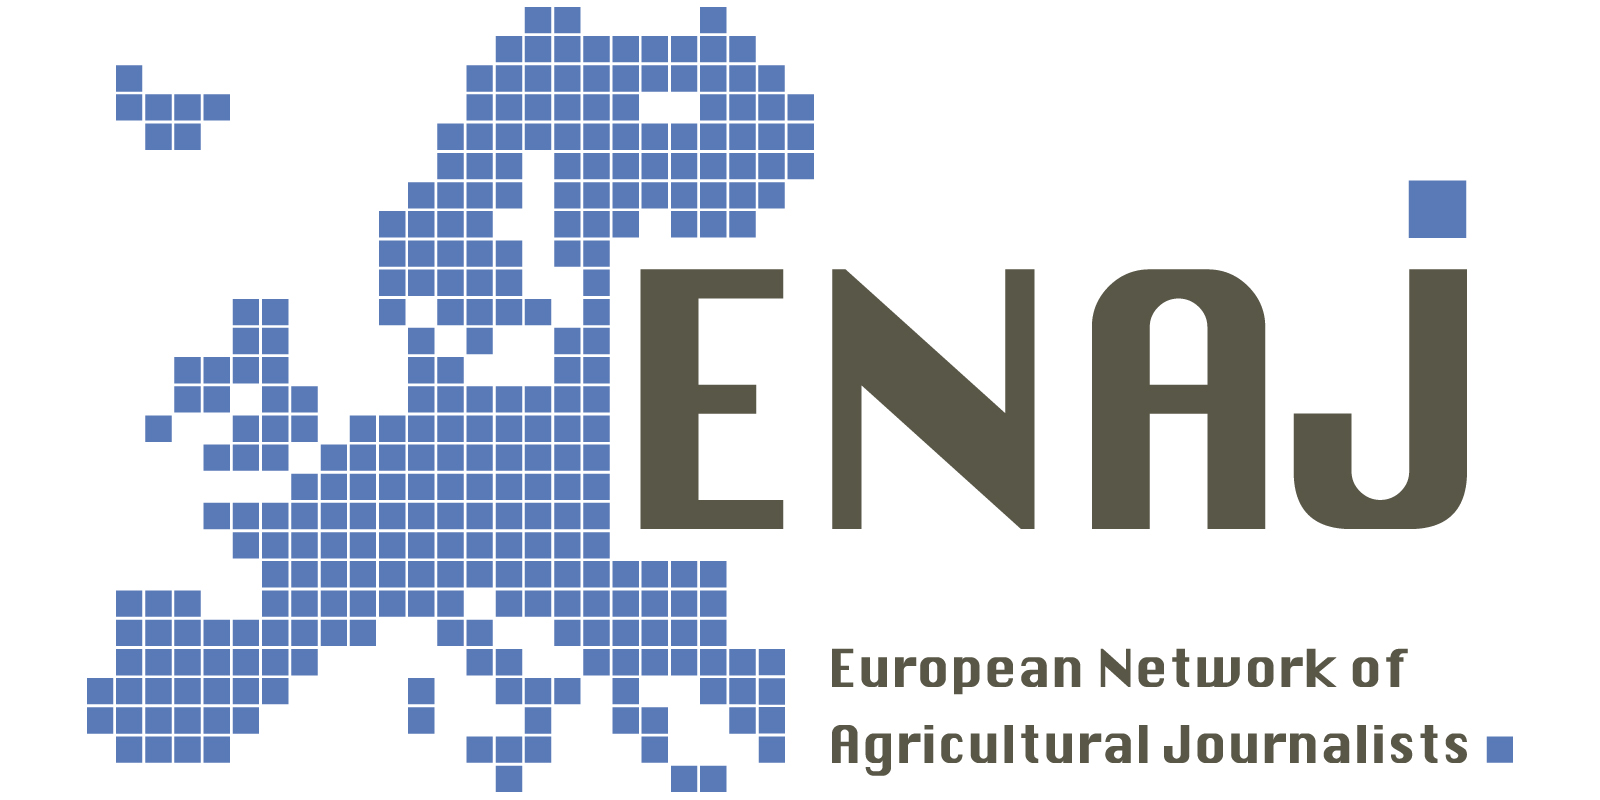 European Network of Agricultural Journalists